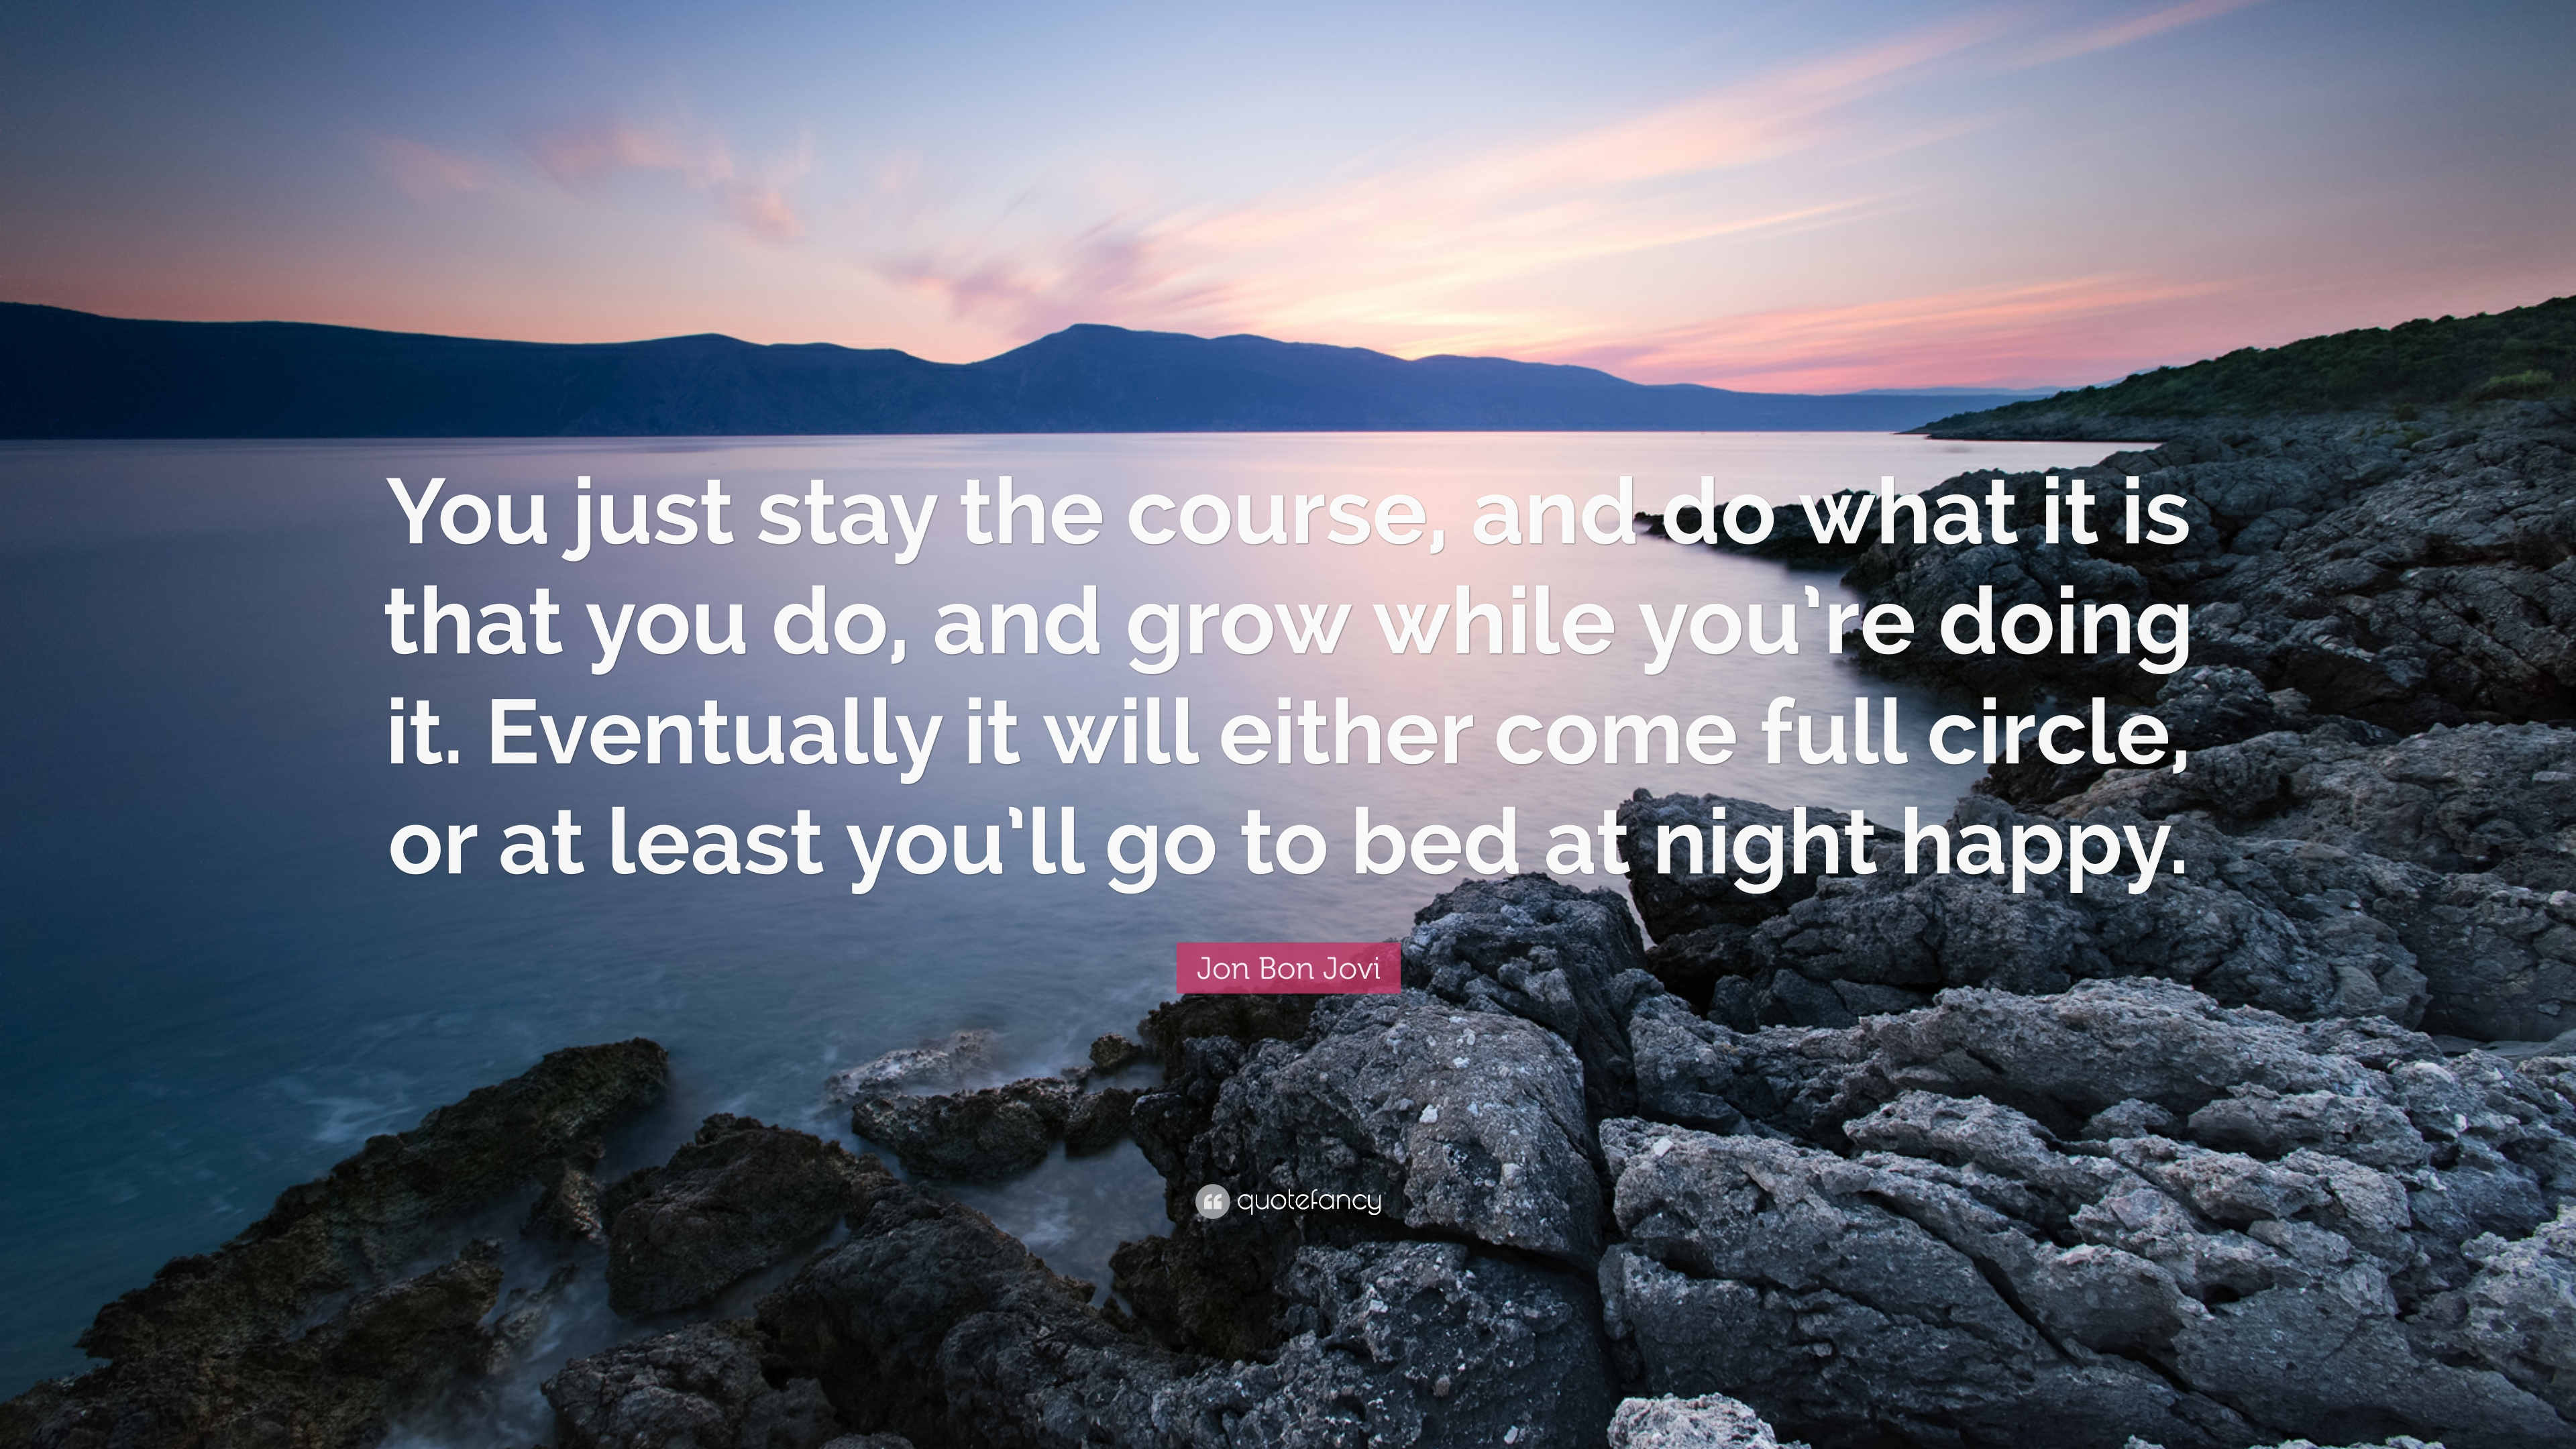 Jon Bon Jovi Quote You Just Stay The Course And Do What It Is